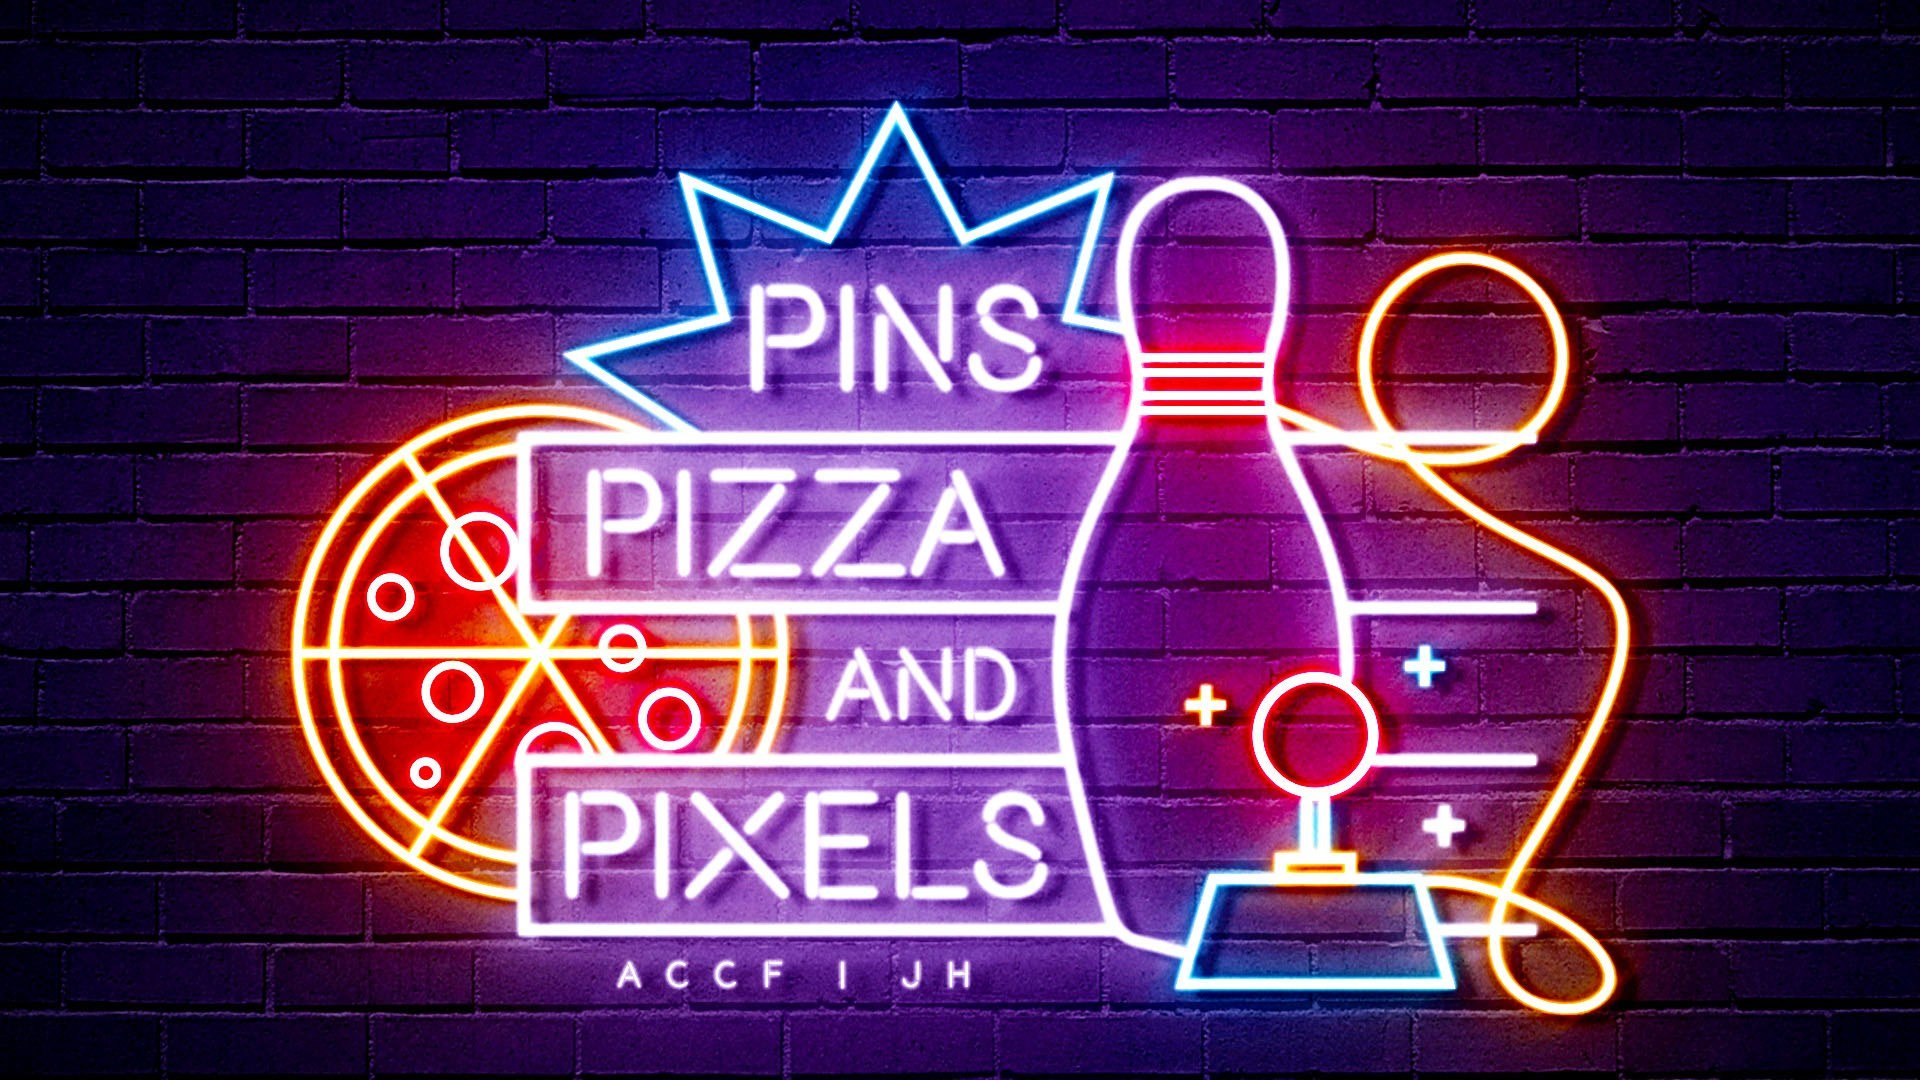 Poster for Pins, Pizza and Pixels